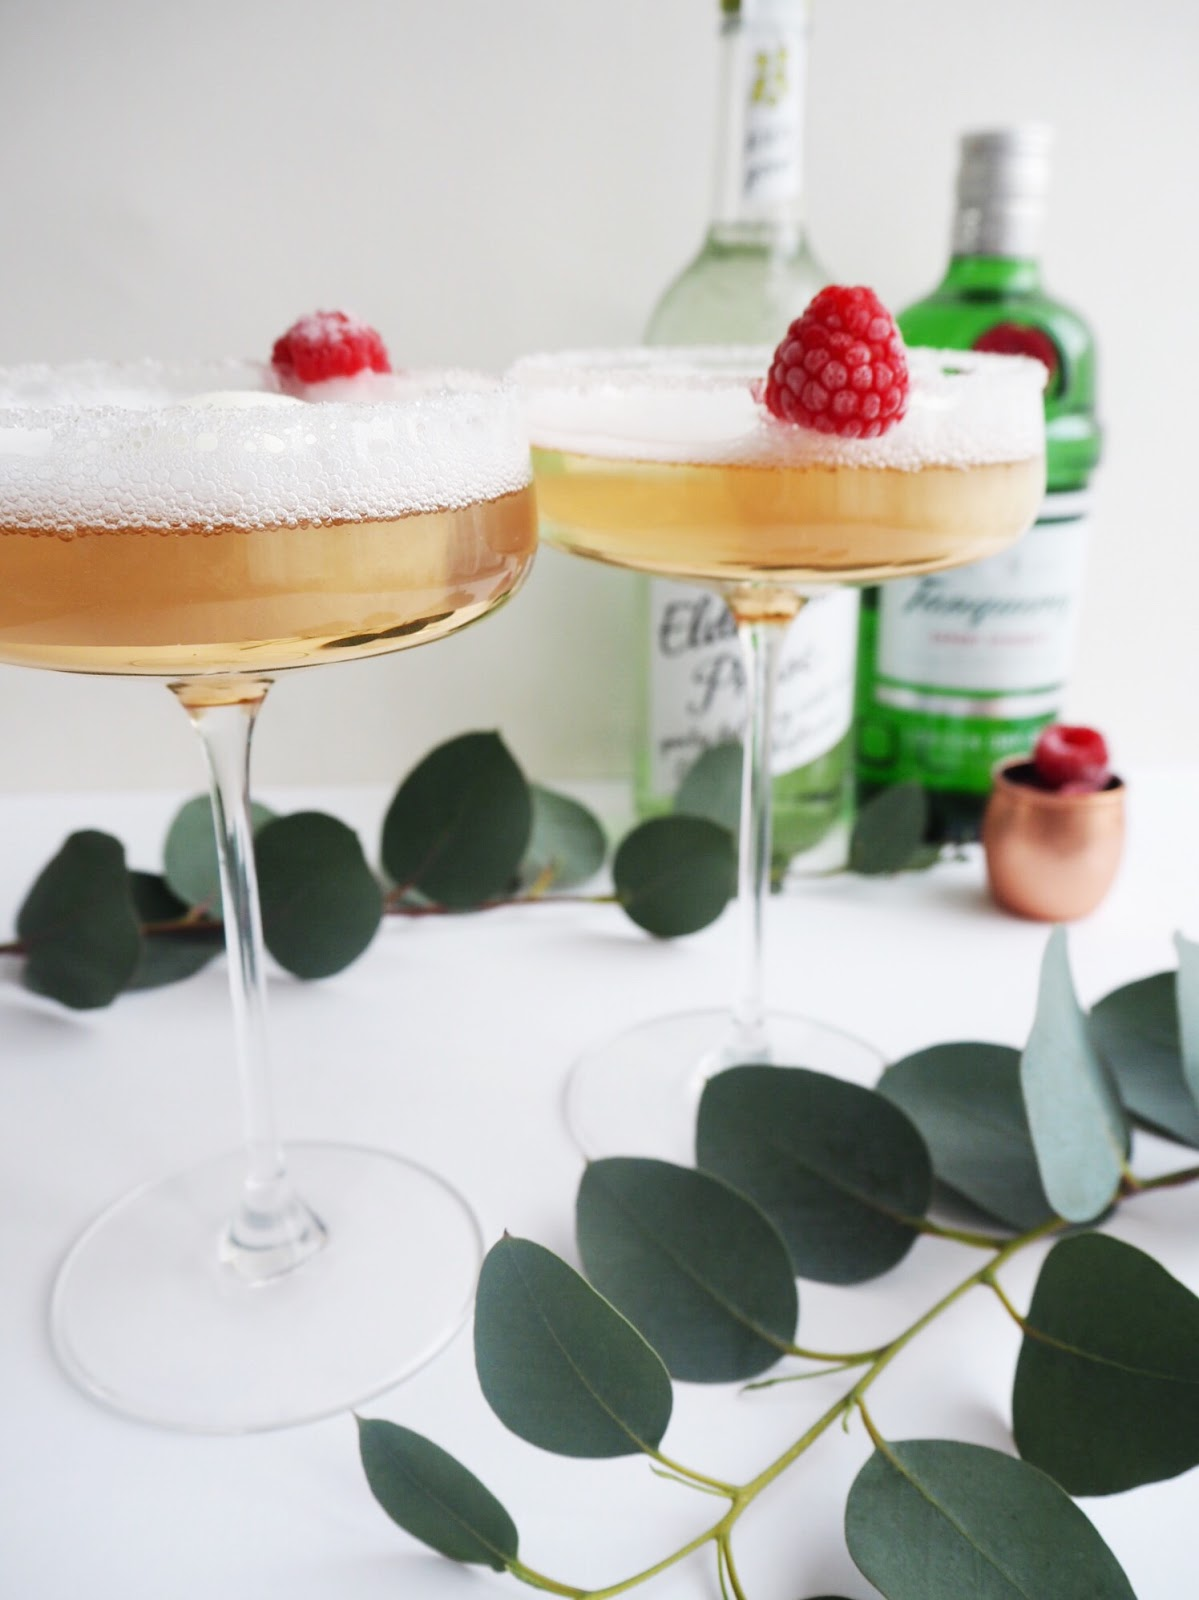 Elderflower Fizz Cocktail Recipe